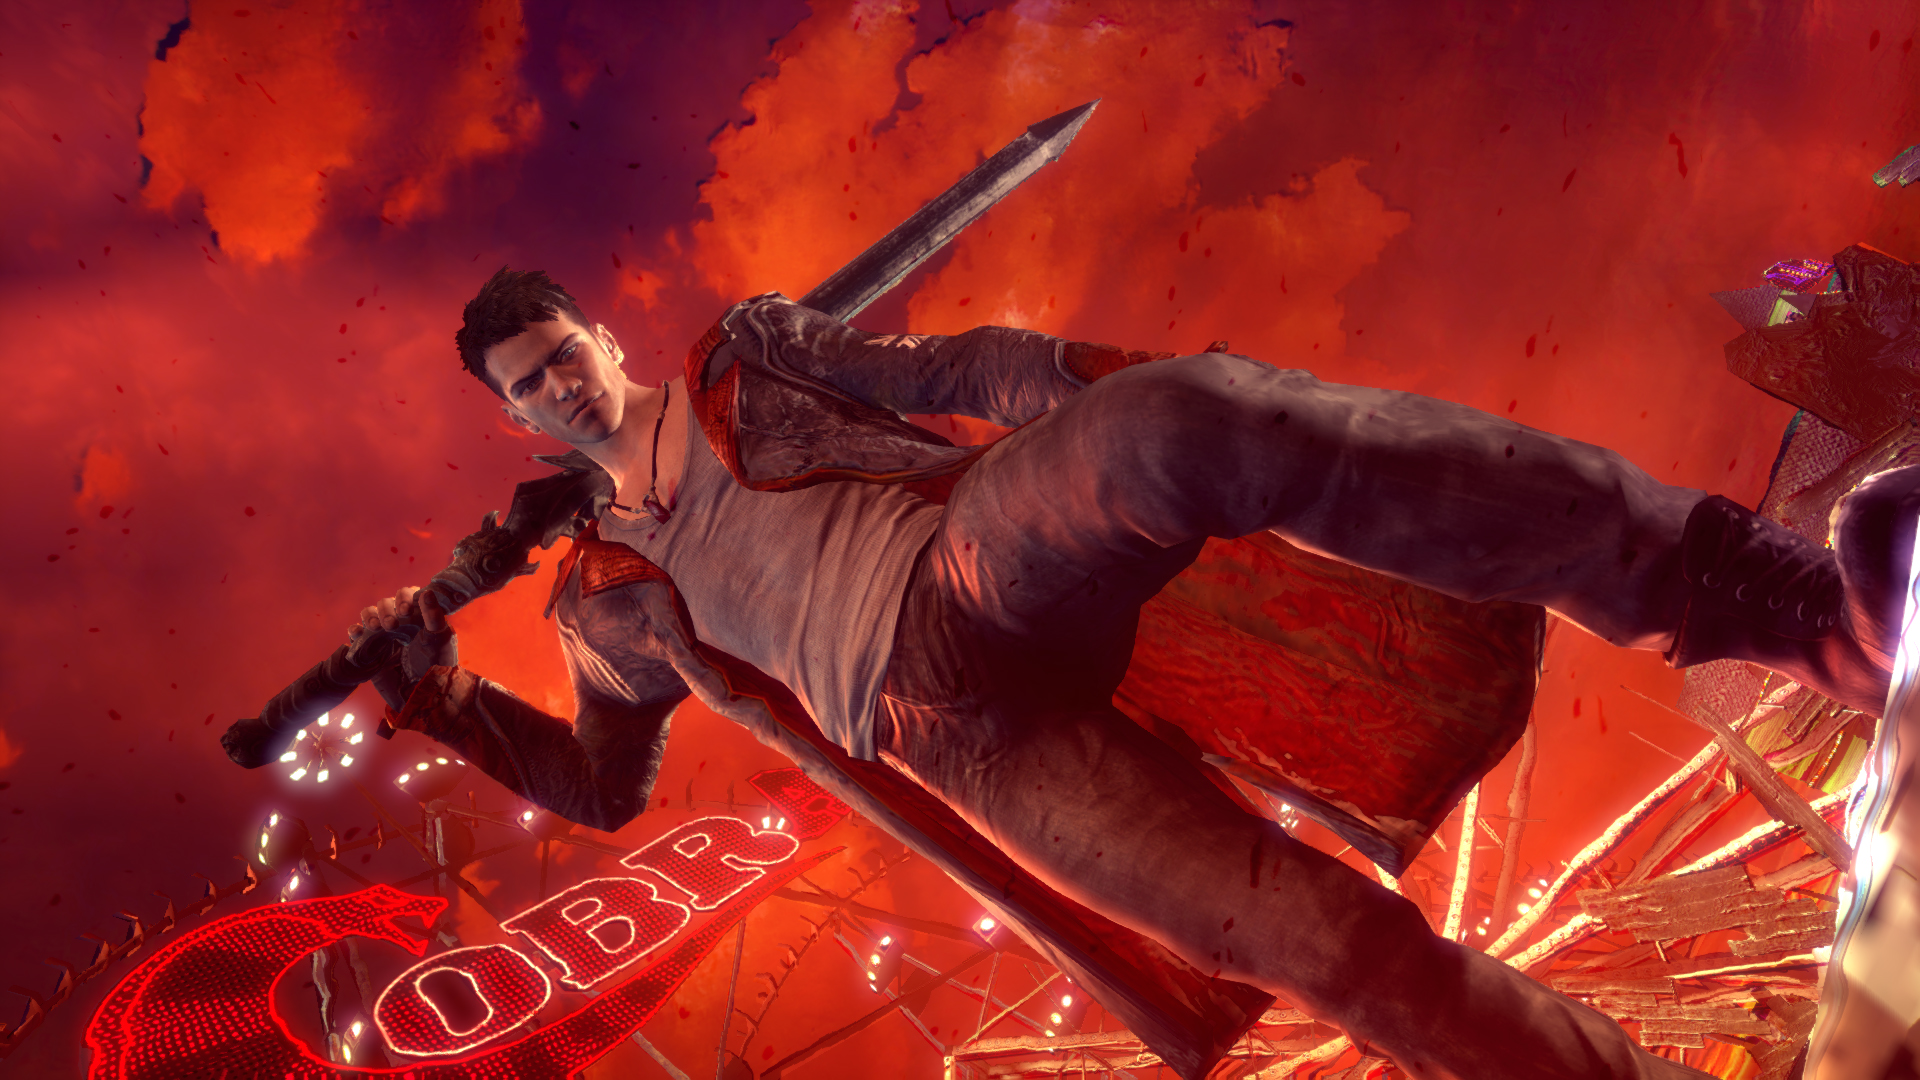 Sggaminginfo dmc arriving on pc on january 25 dmcdevilmaycrypc 5 voltagebd Image collections